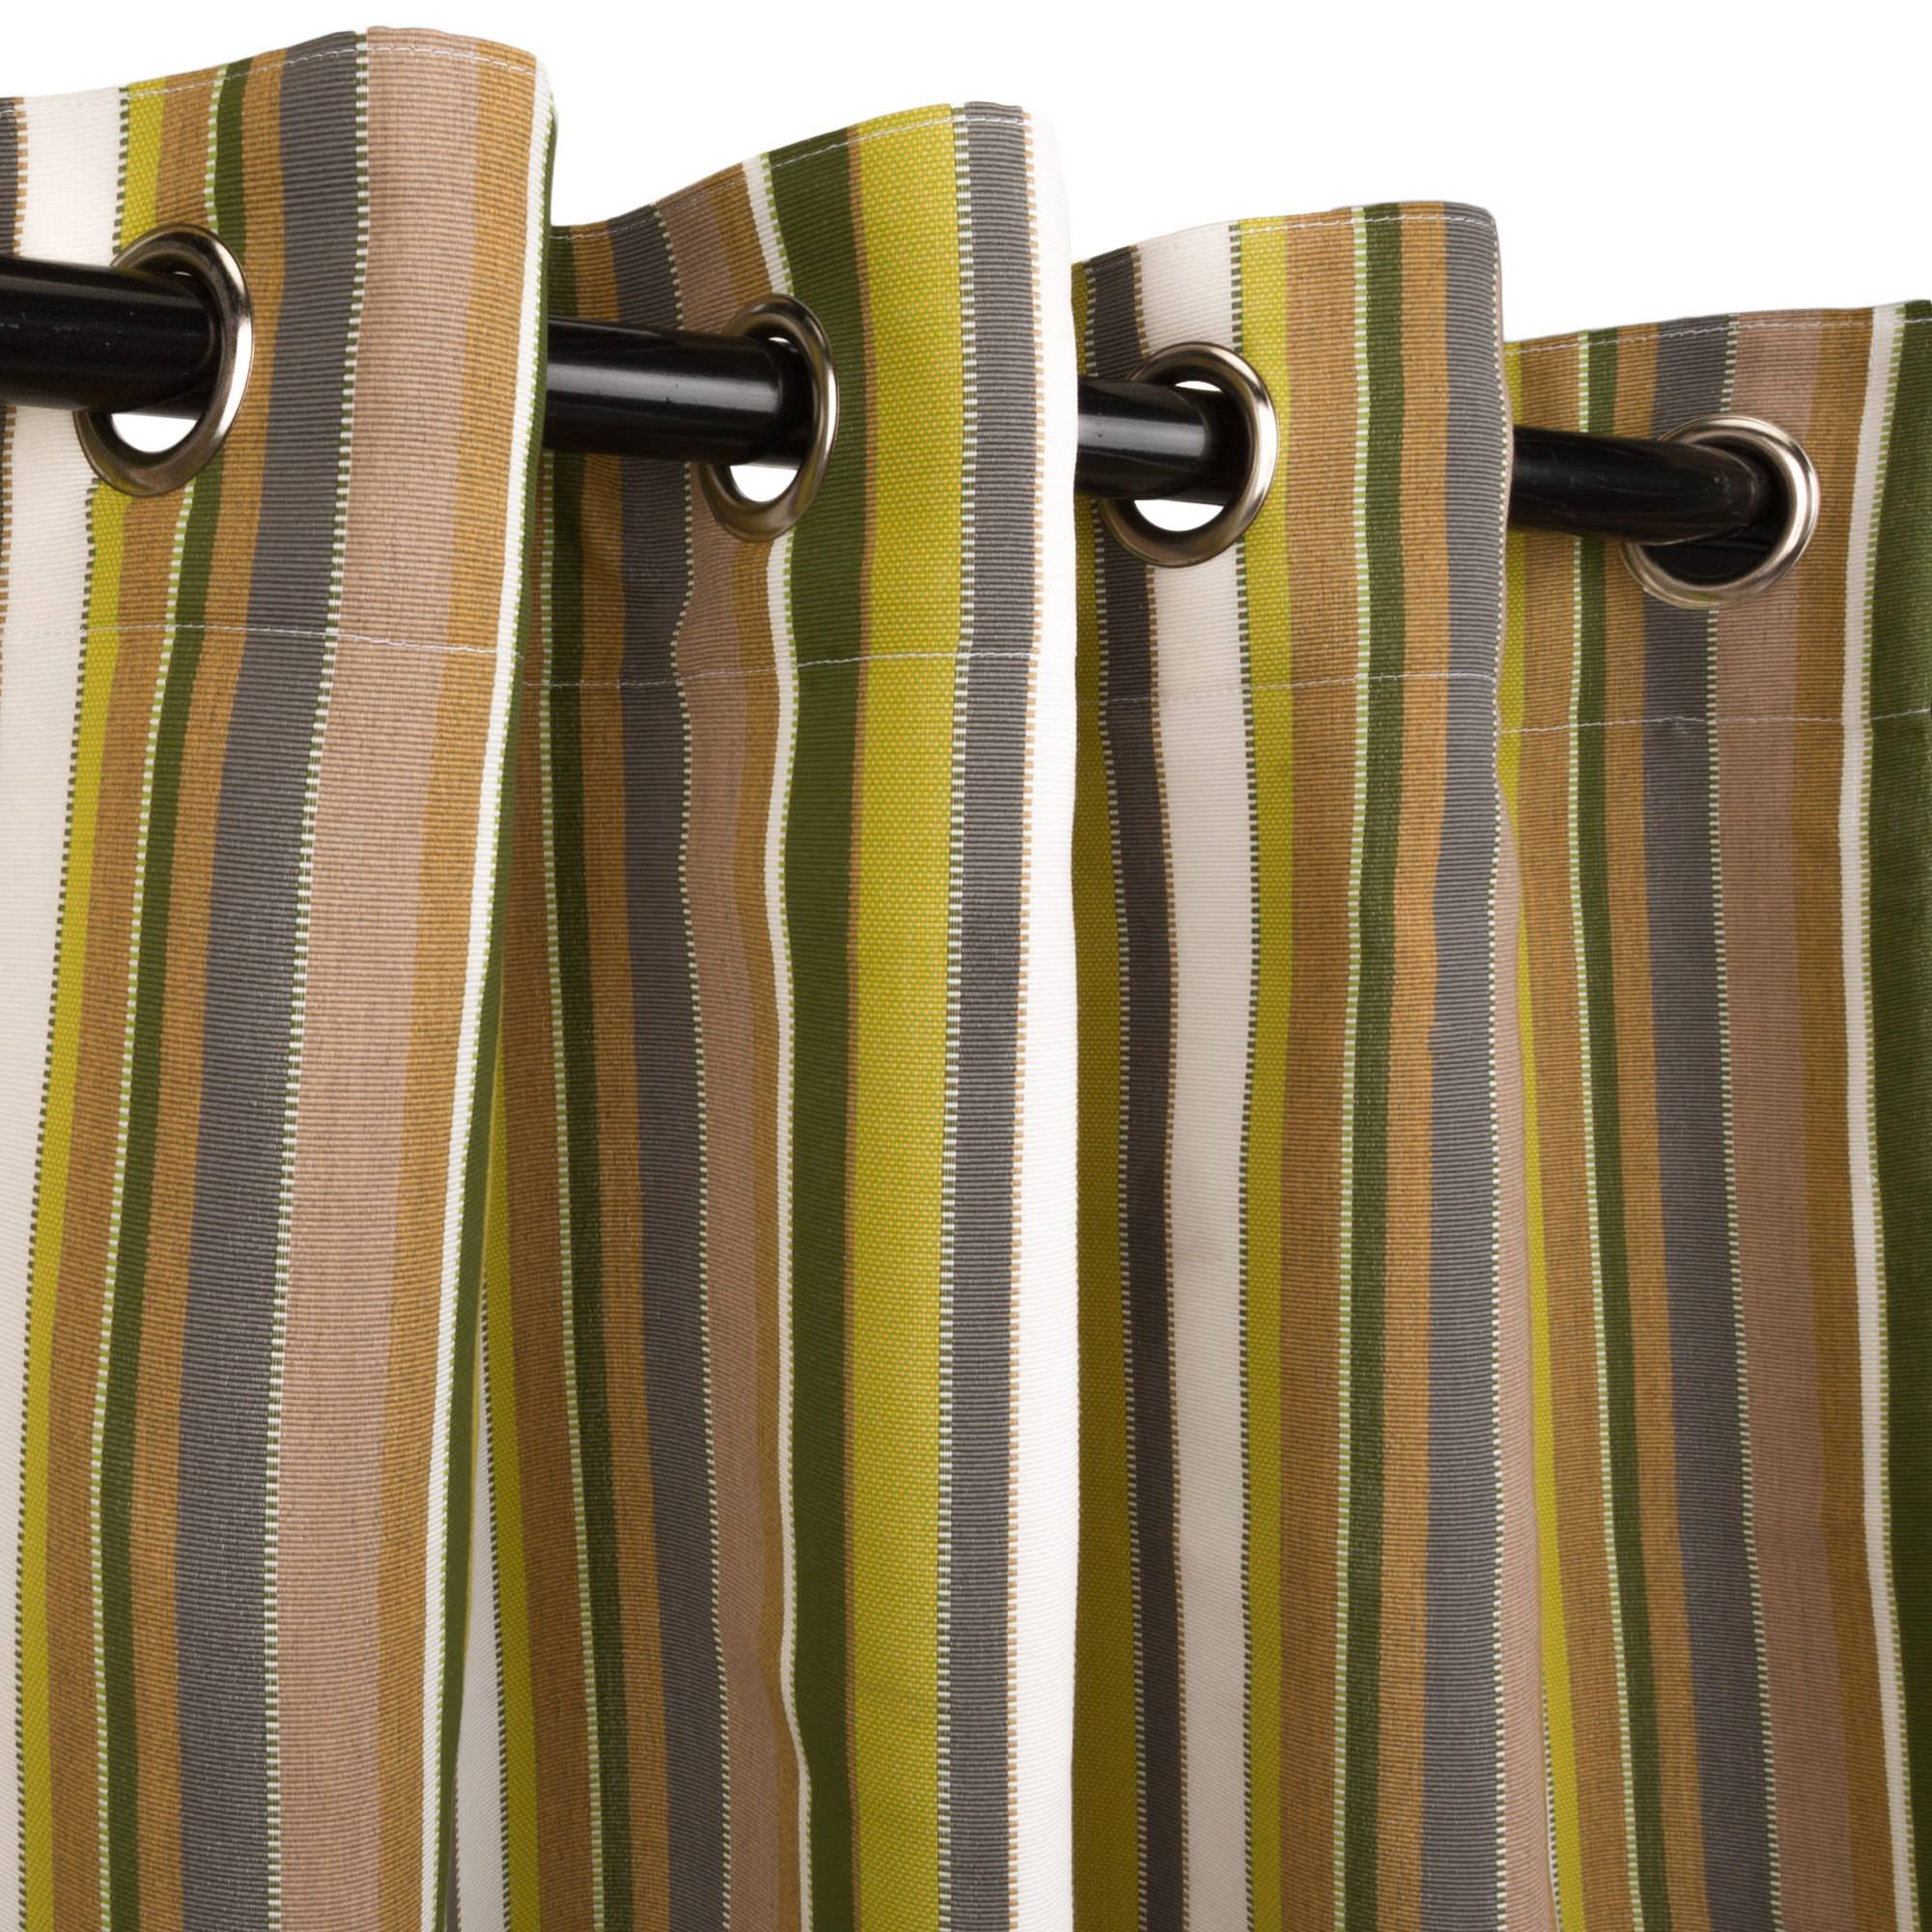 Sunbrellas | Sunbrella Curtains | Sunbrella Outdoor Throw Pillows